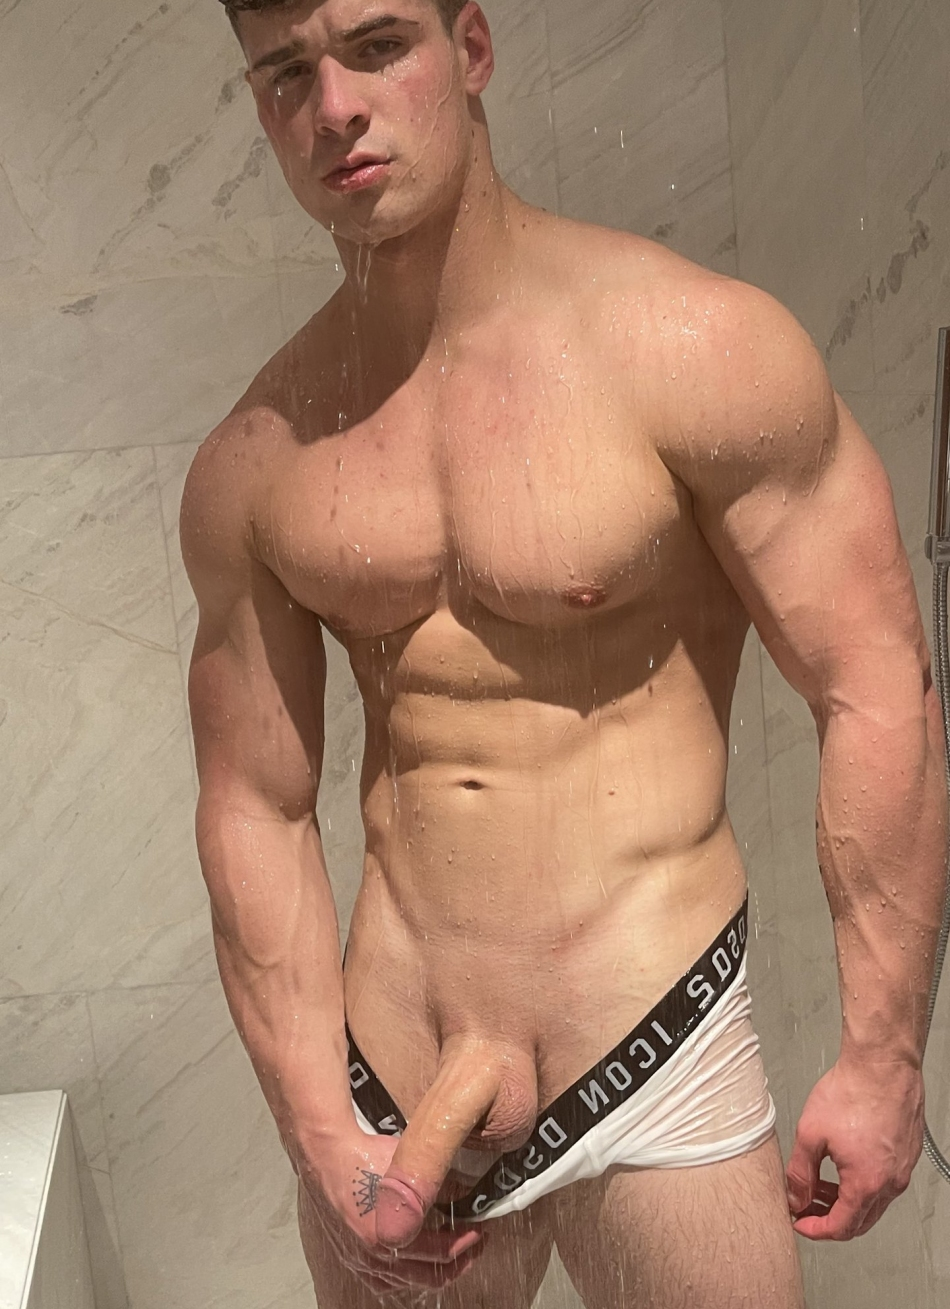 Muscle boy in the shower